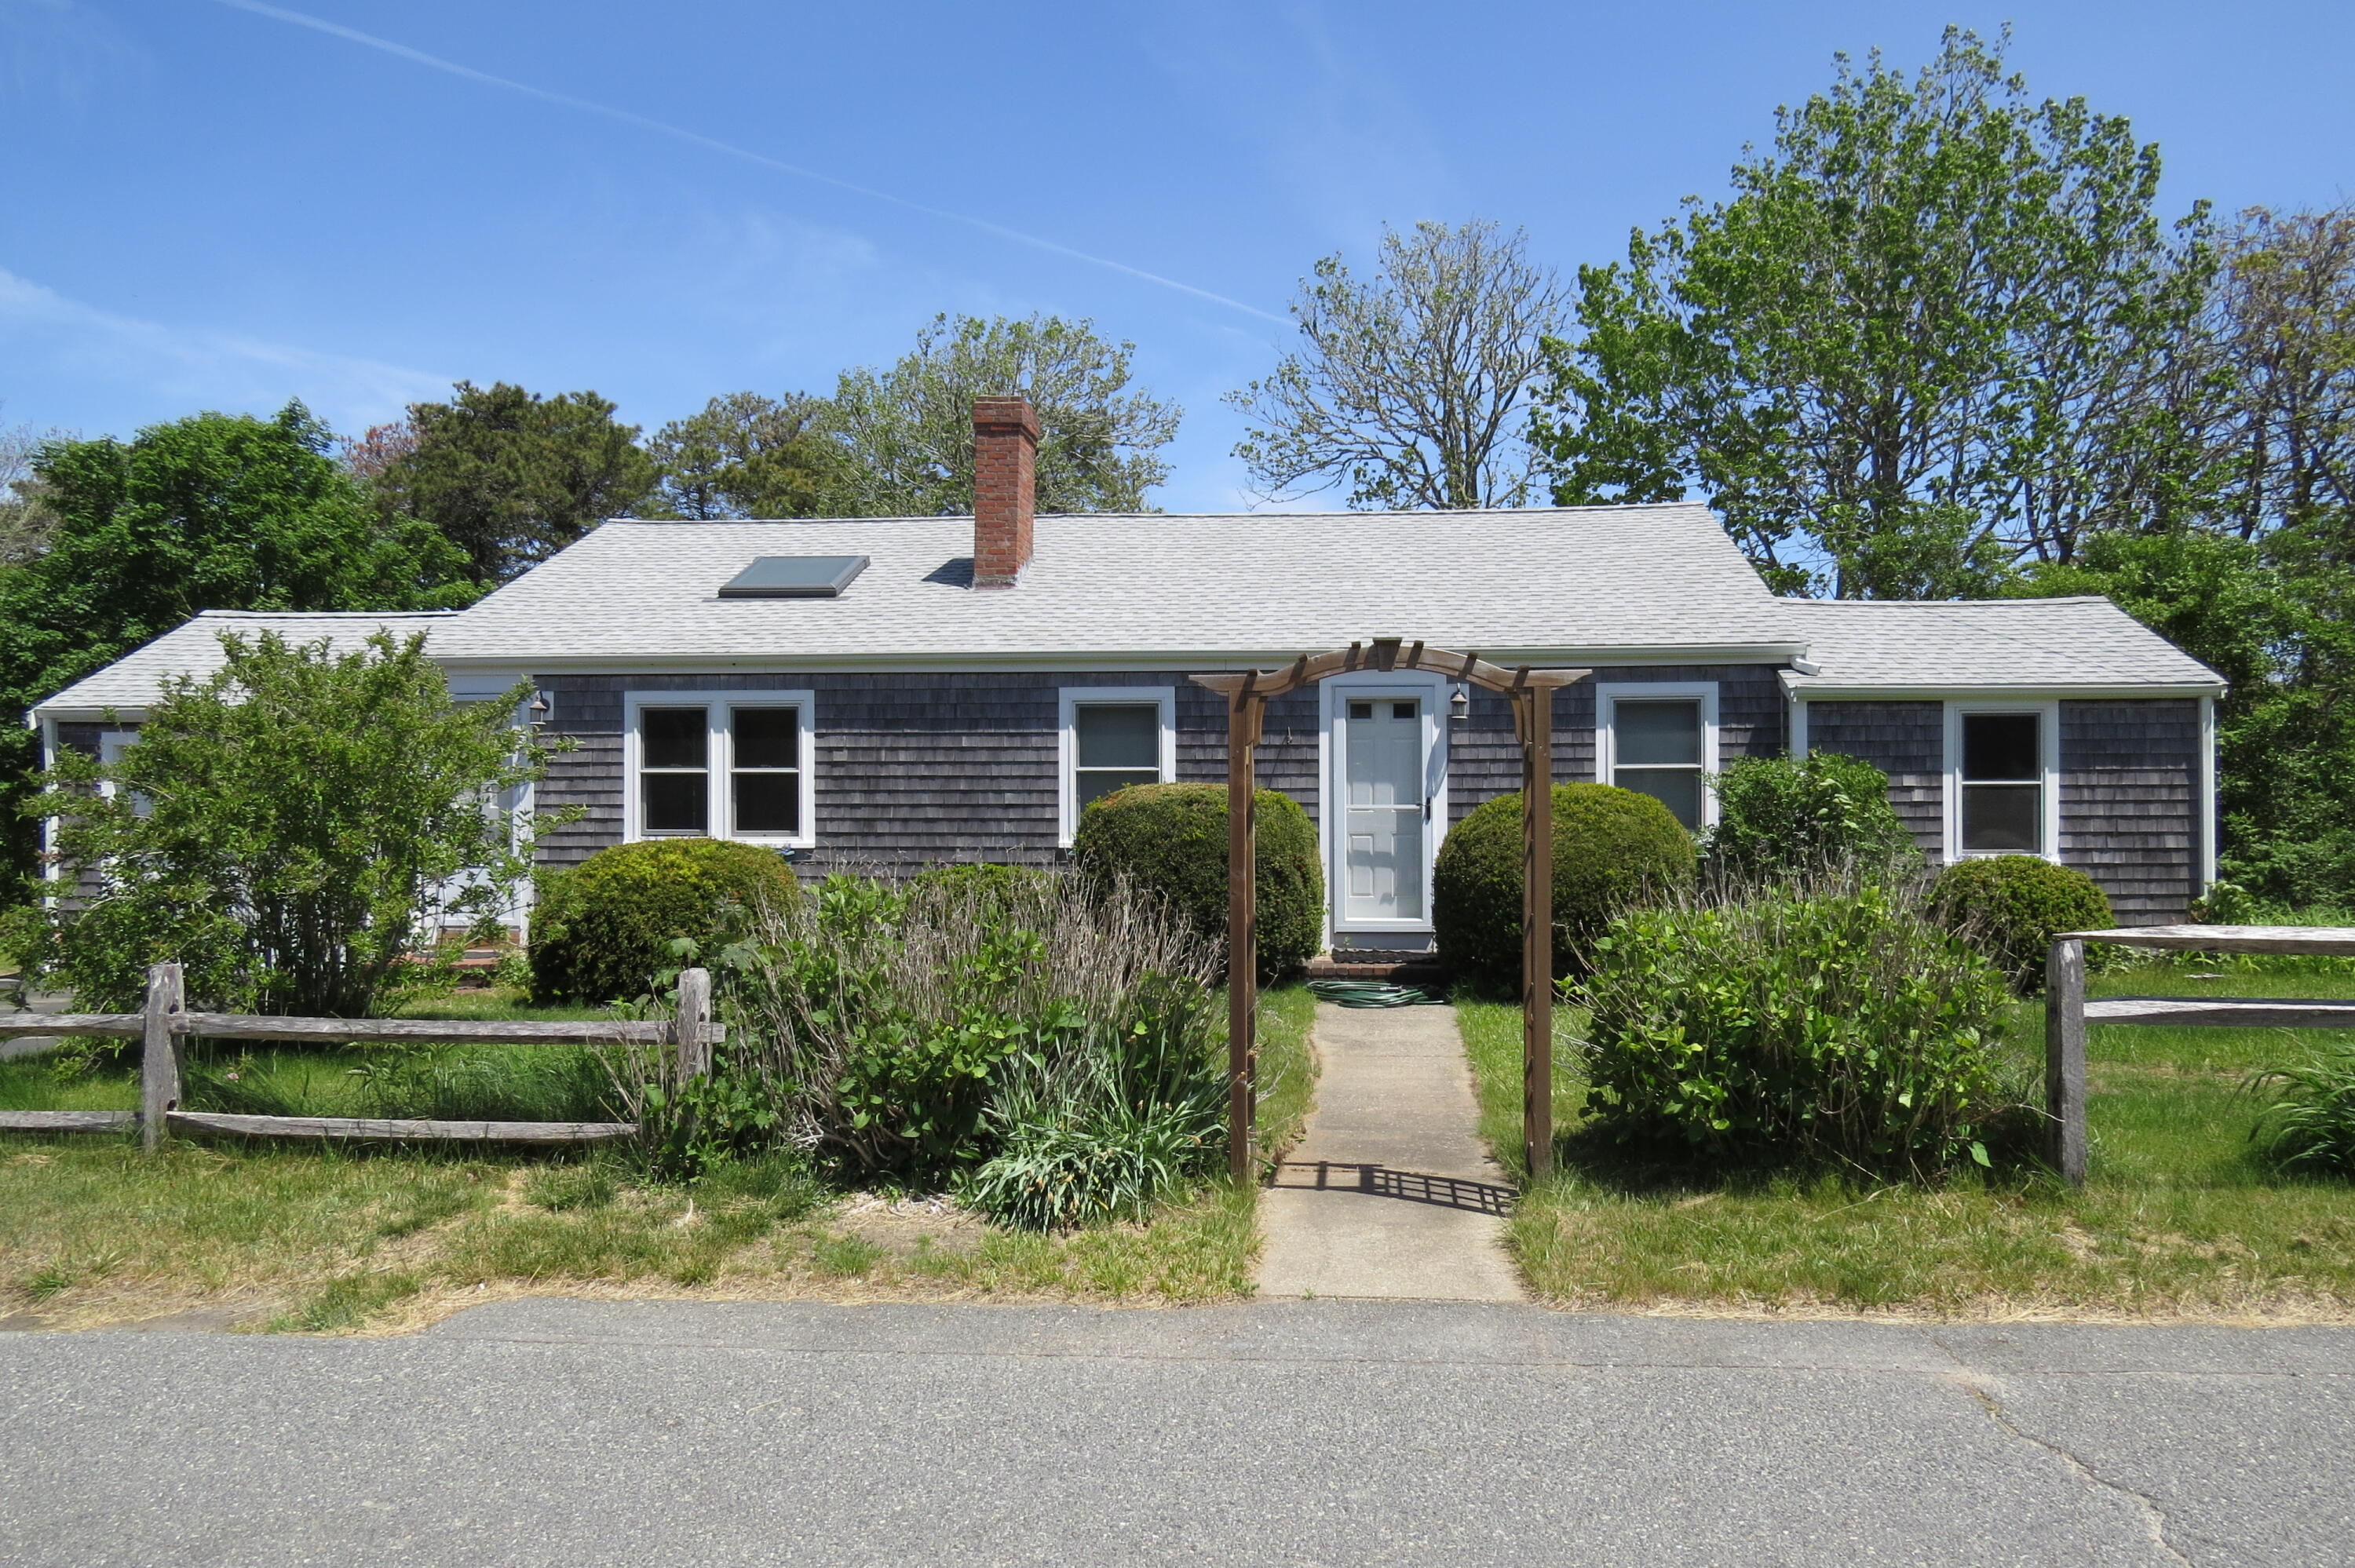 101 Old Mail Road, North Chatham MA, 02650 details